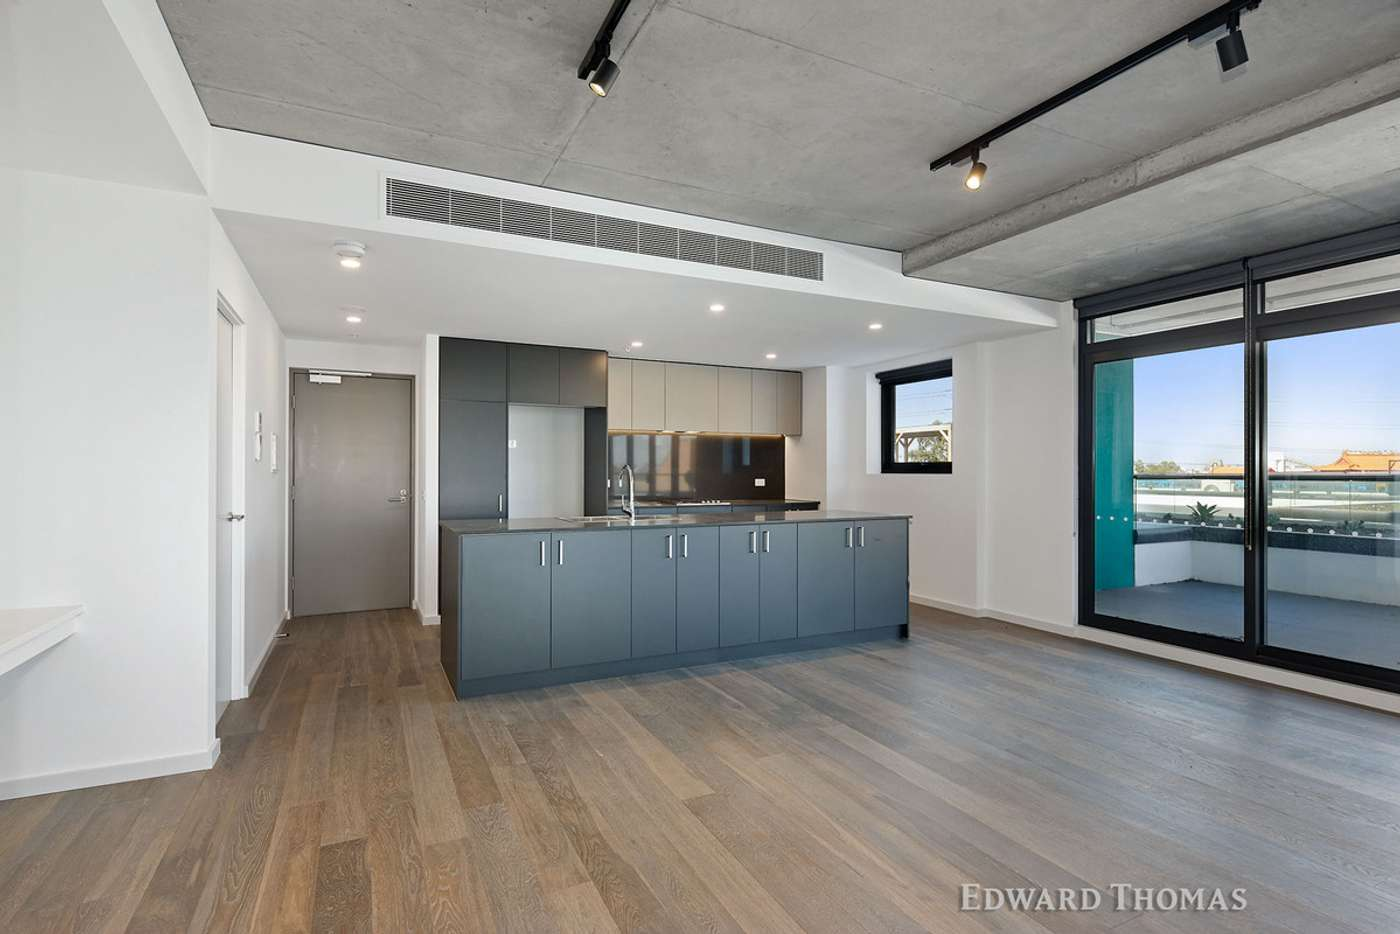 Main view of Homely apartment listing, 413/77 Hobsons Road, Kensington VIC 3031